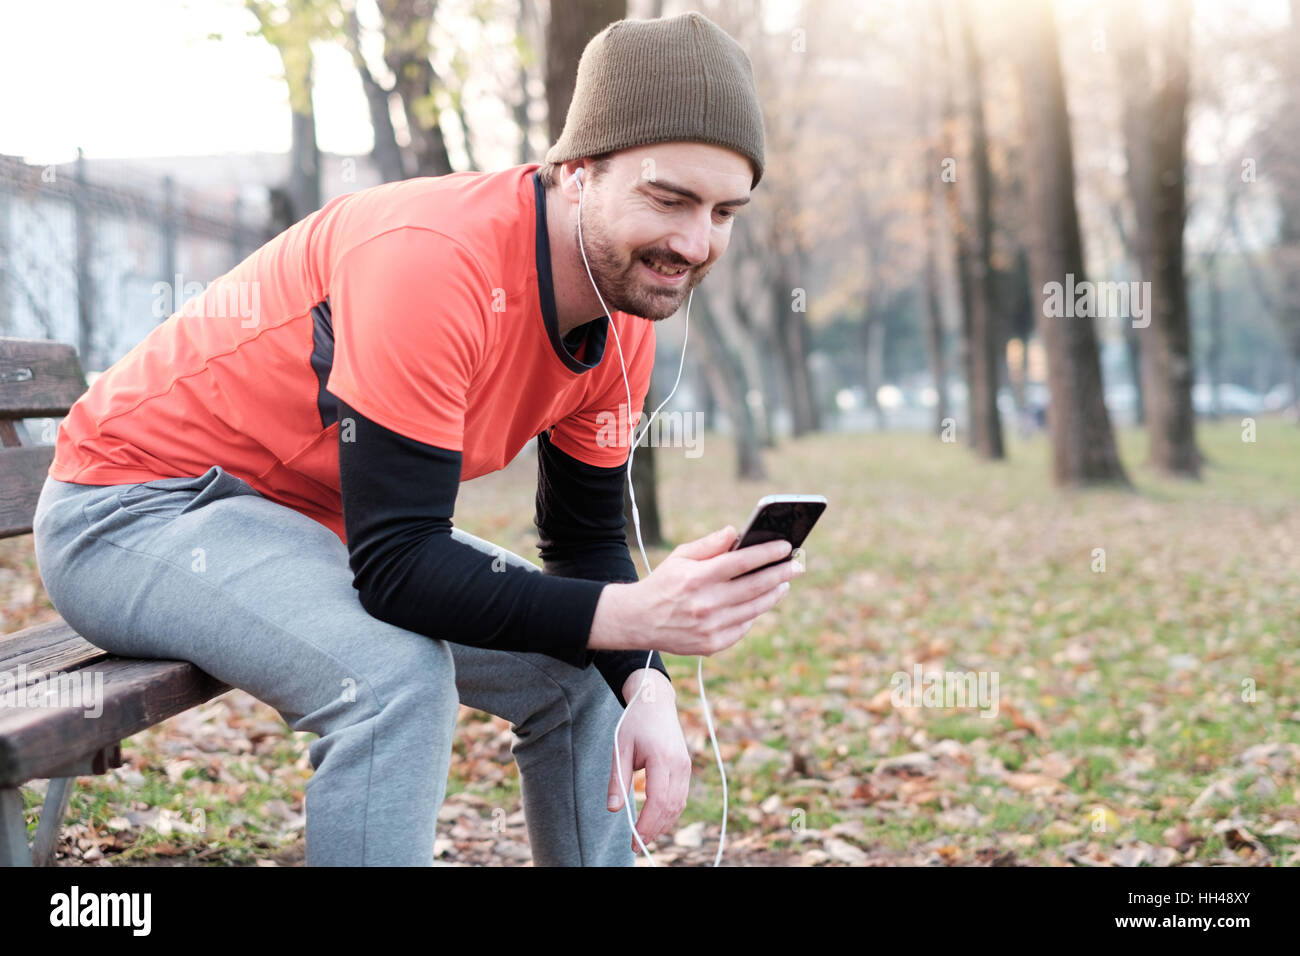 Young man working out in the city park and using his mobile phone - Stock Image